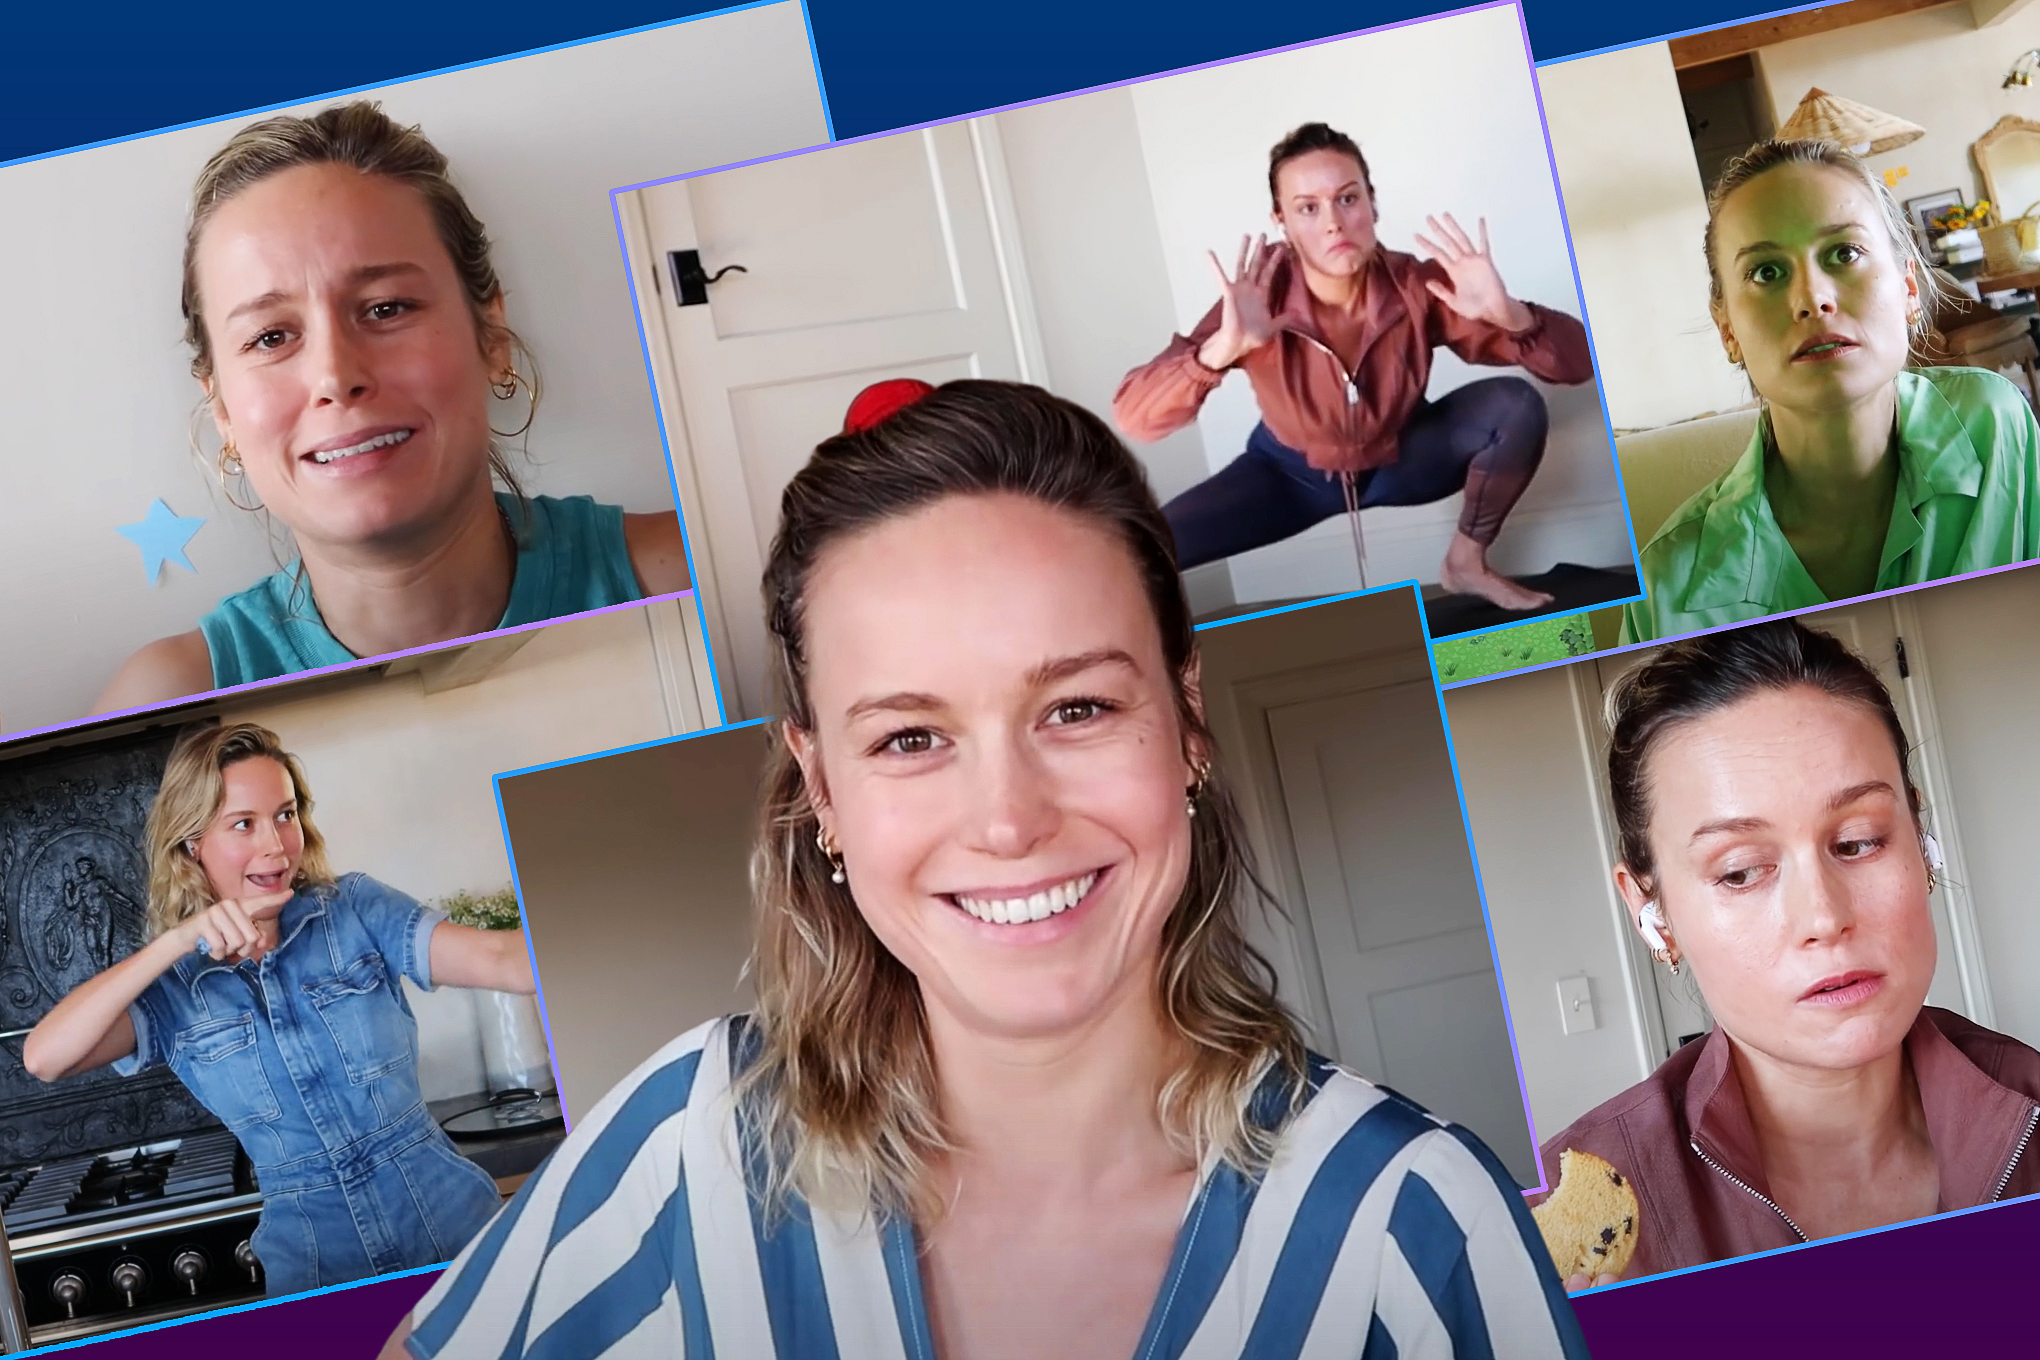 A collage of images of Brie Larson from her channel